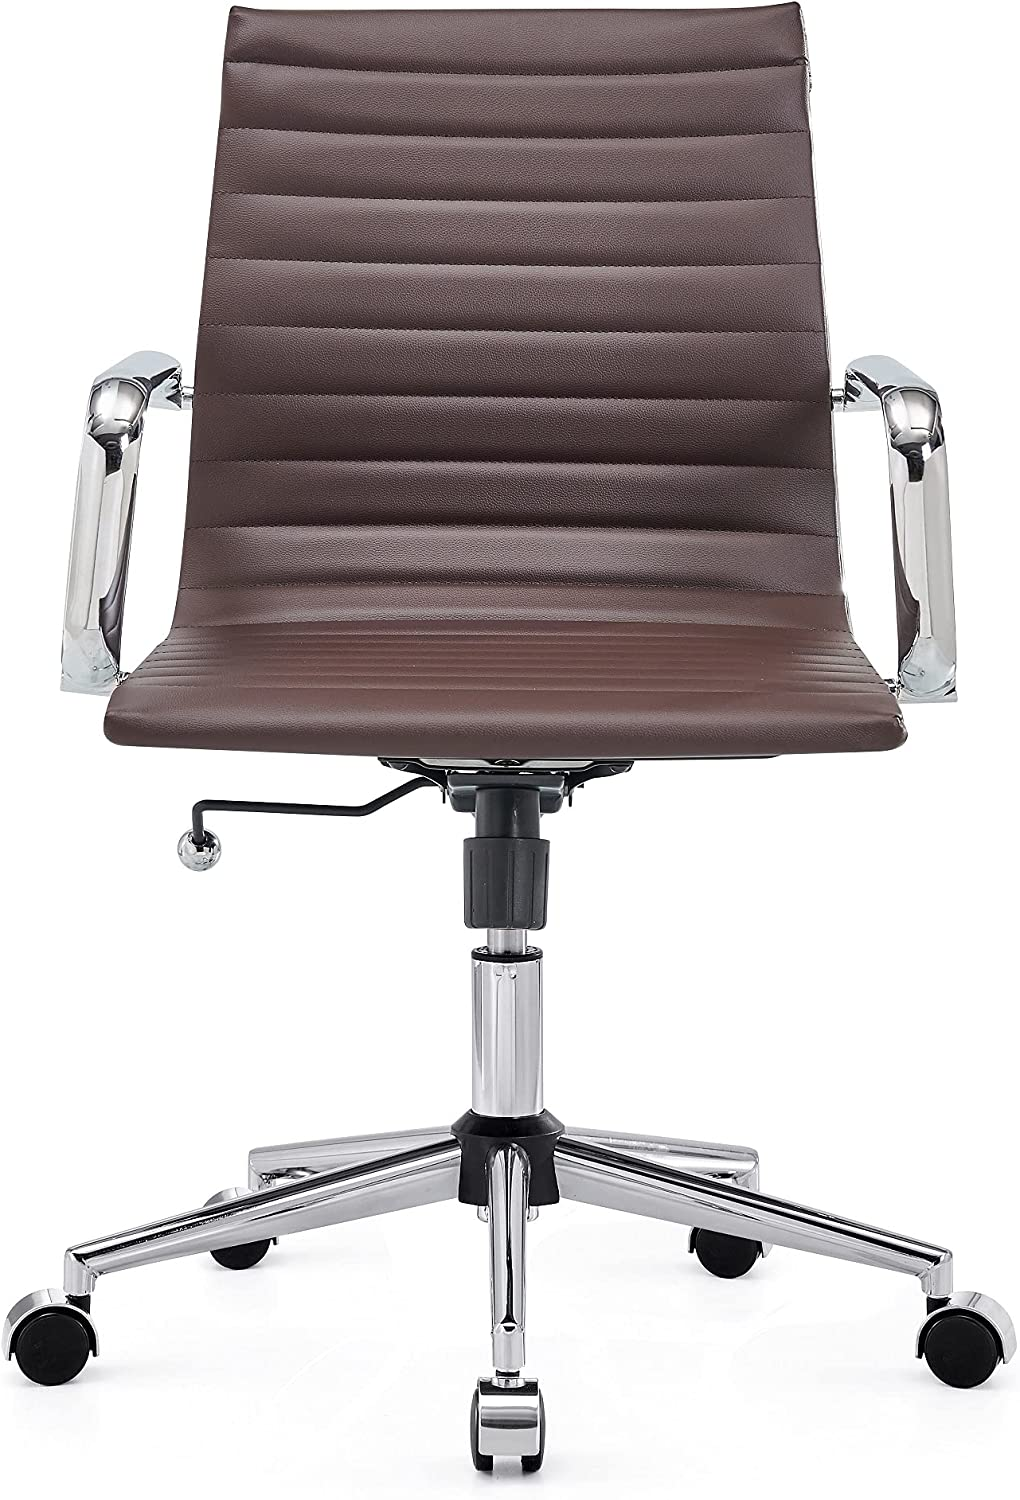 CAROCC Office Chair with Lumbar Support Desk Chairs with Wheels Chairs for Office Desk (3011 Brown)